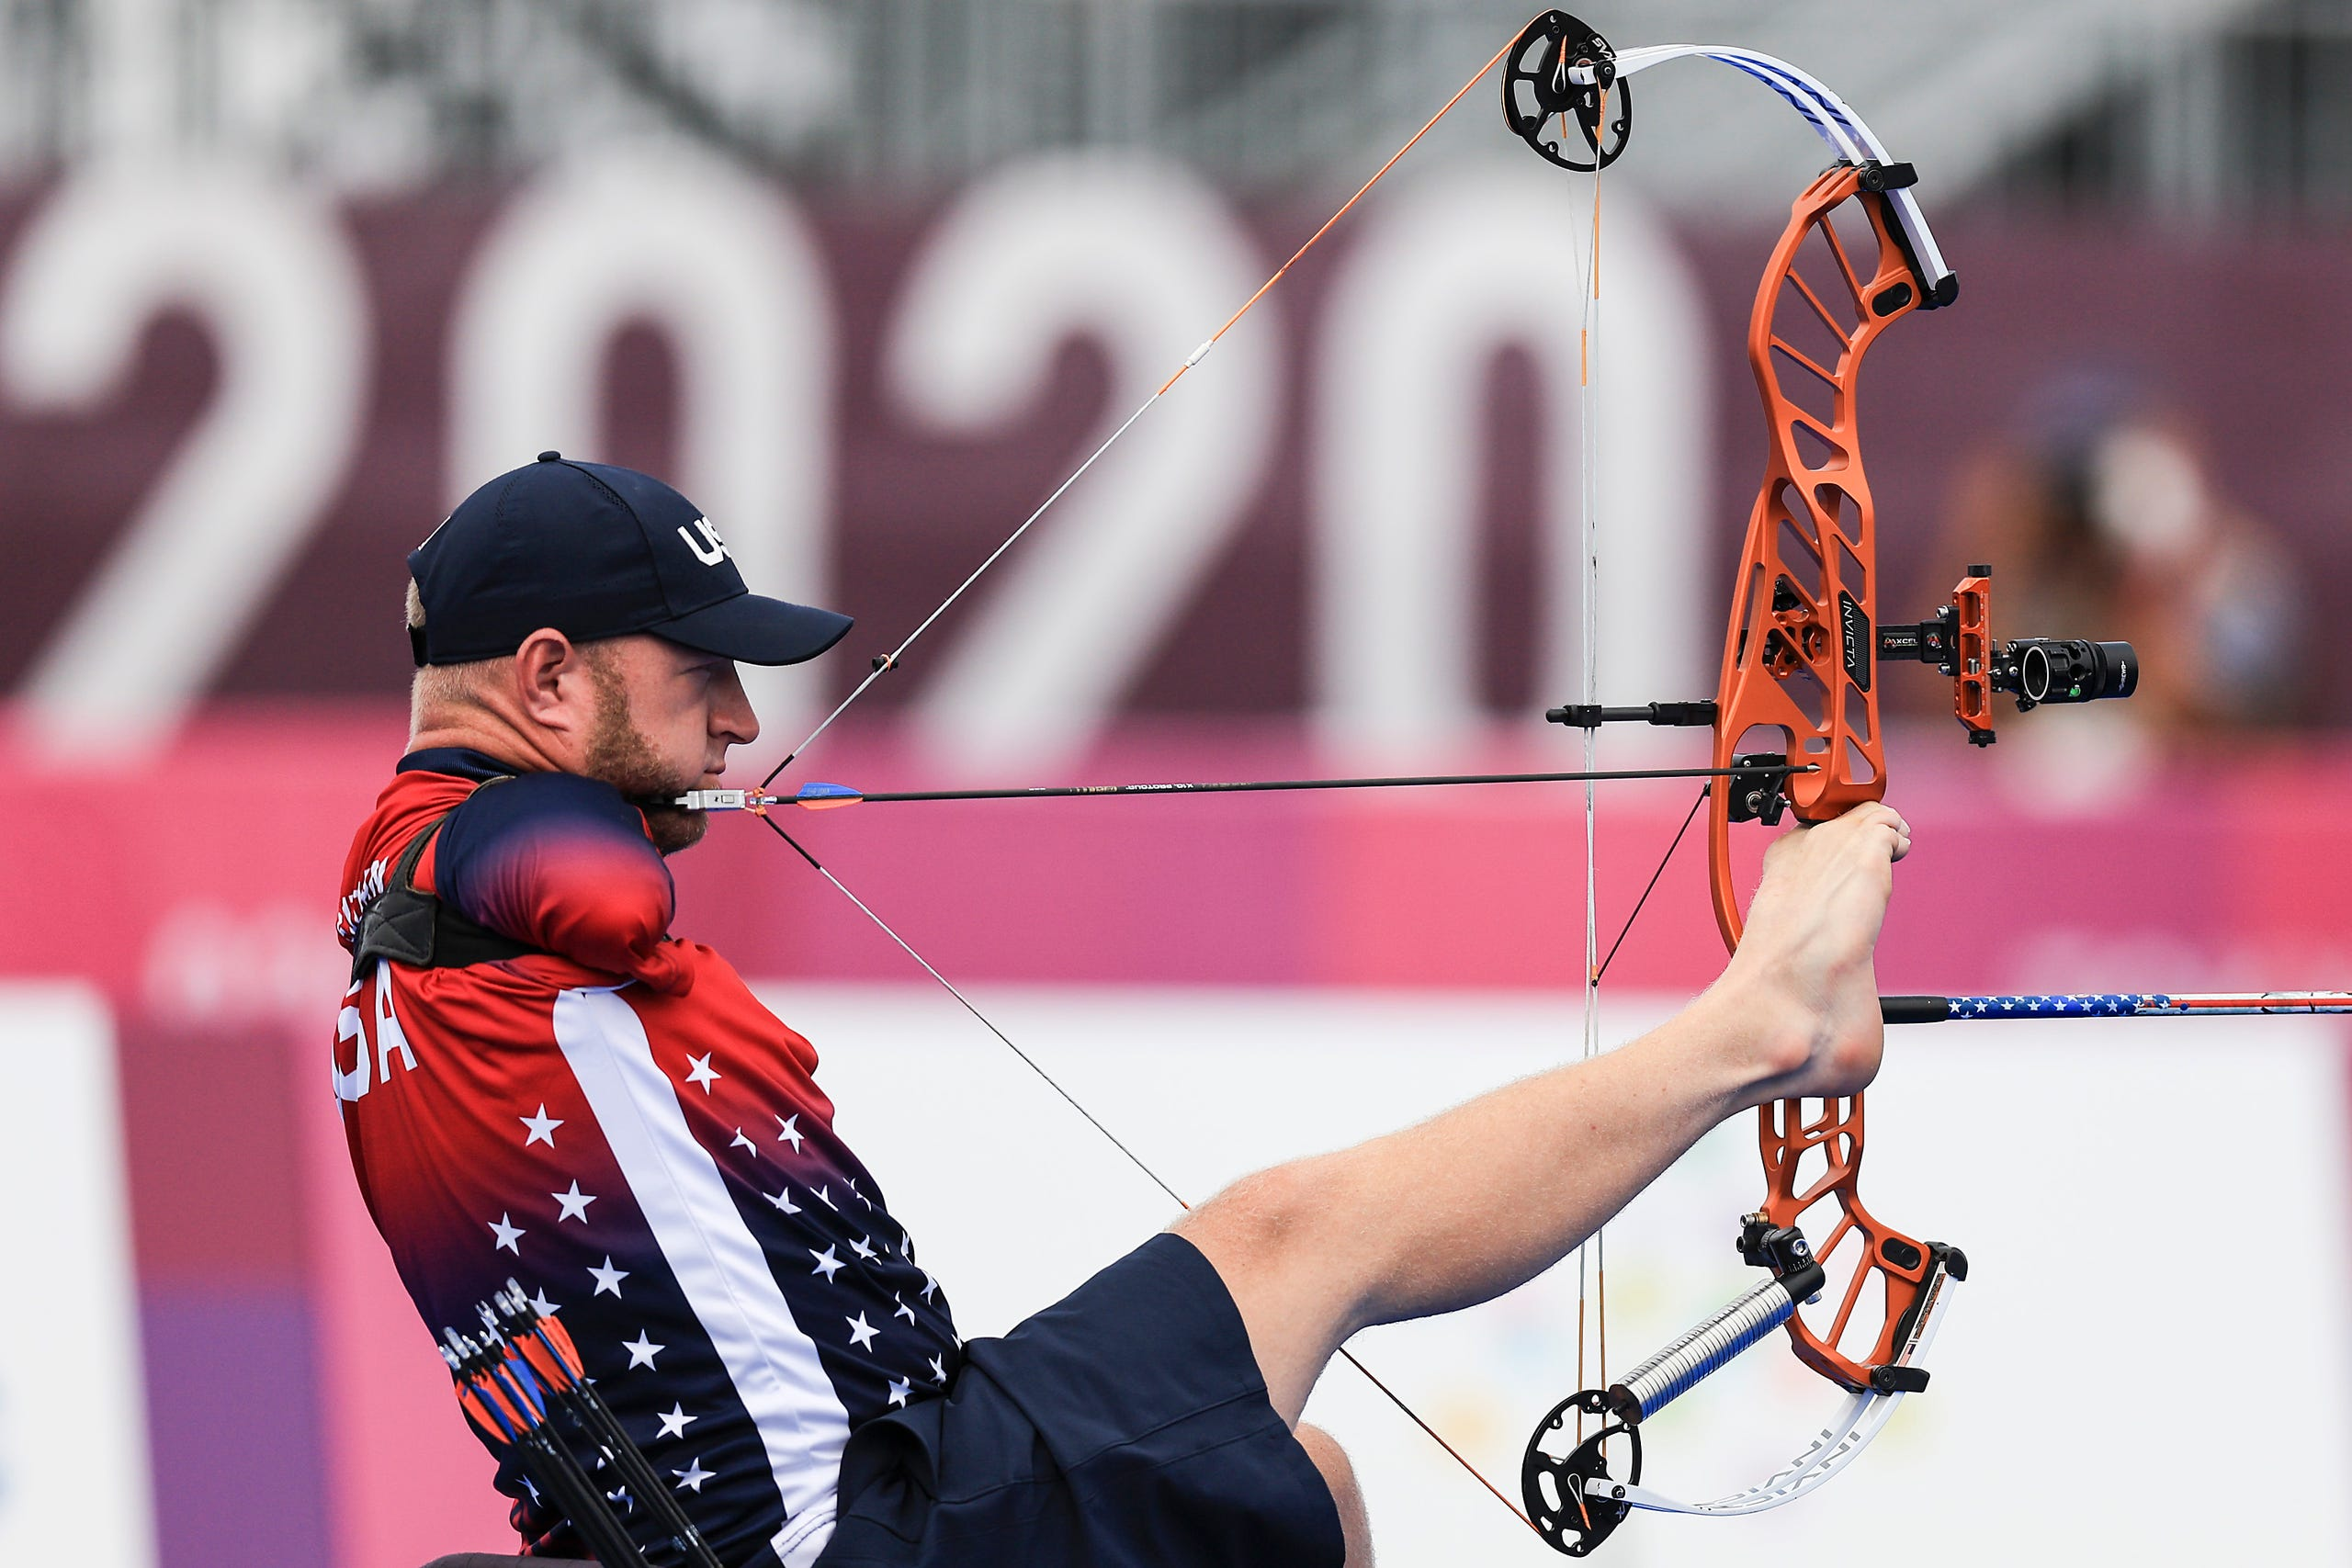 Aug. 31, 2021: Matt Stutzman of Team USA competes in his match against Marcel Pavlik of Team Slovakia during the Men's Archery Individual Compound - Open 1/8 Elimination match.